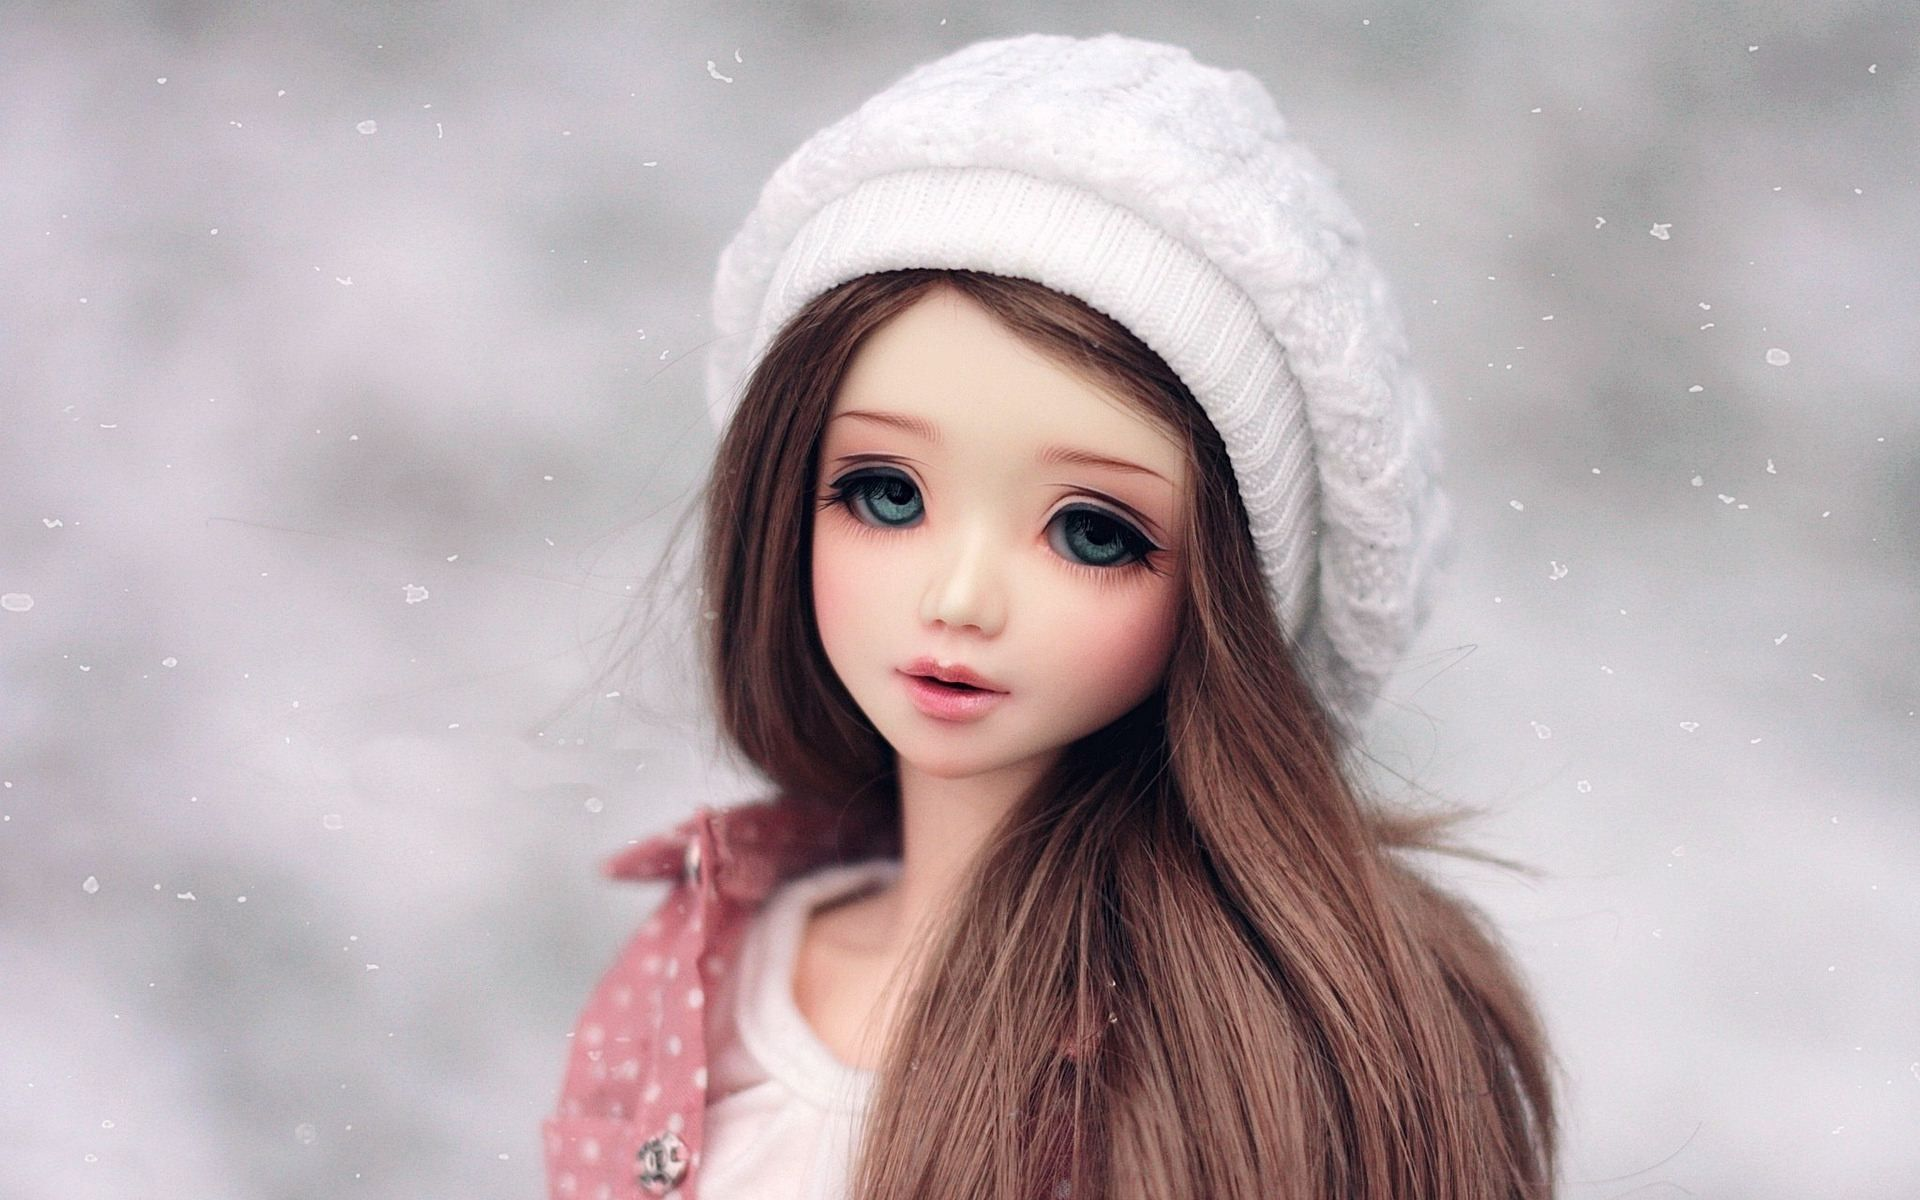 Top 80 Best Beautiful Cute Barbie Doll HD Wallpapers